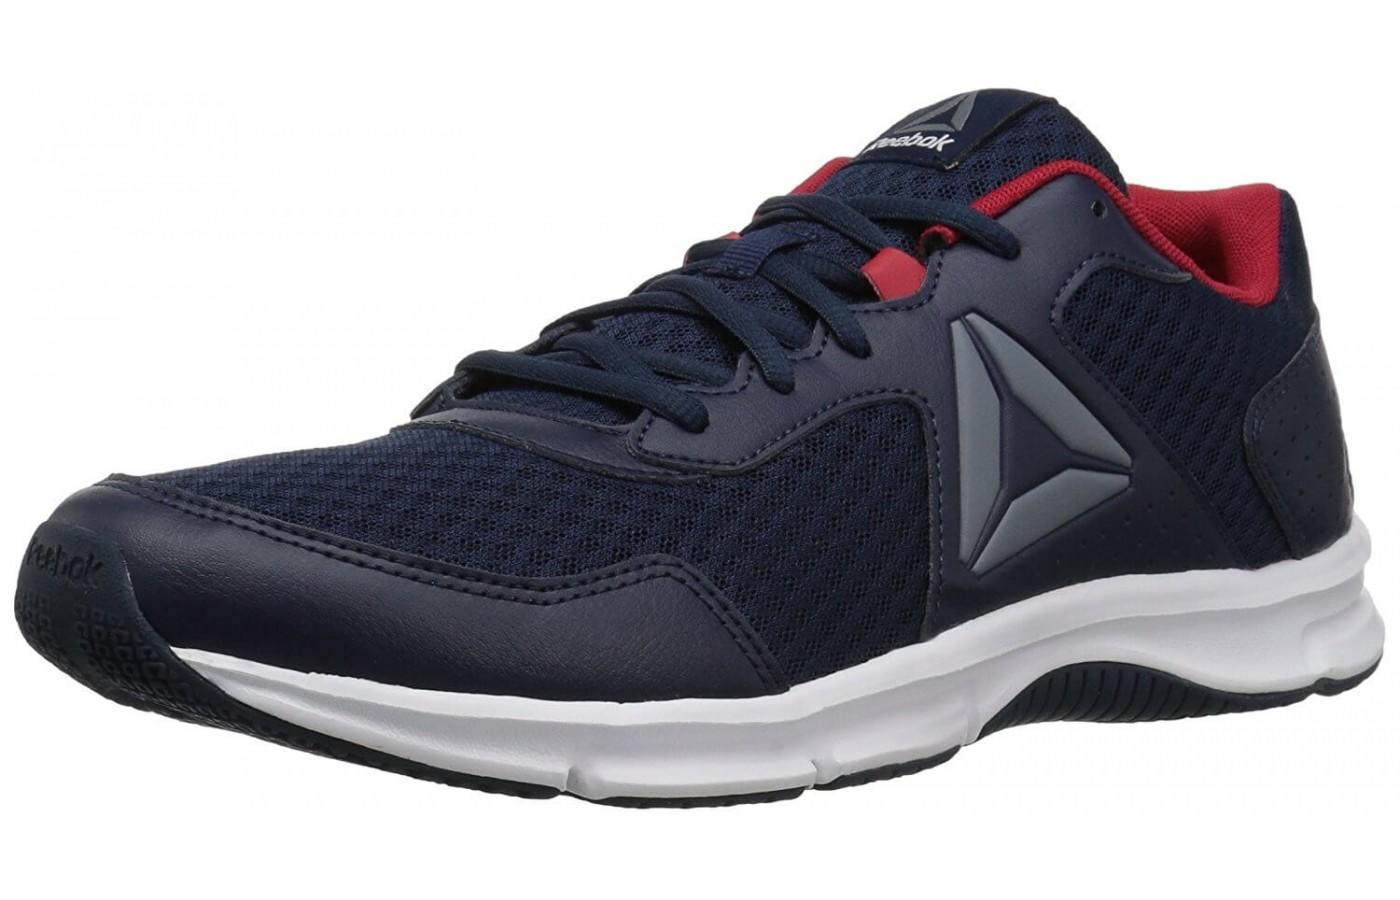 The Reebok Express Runner provides the runner with a very breathable upper. 24ad96d93